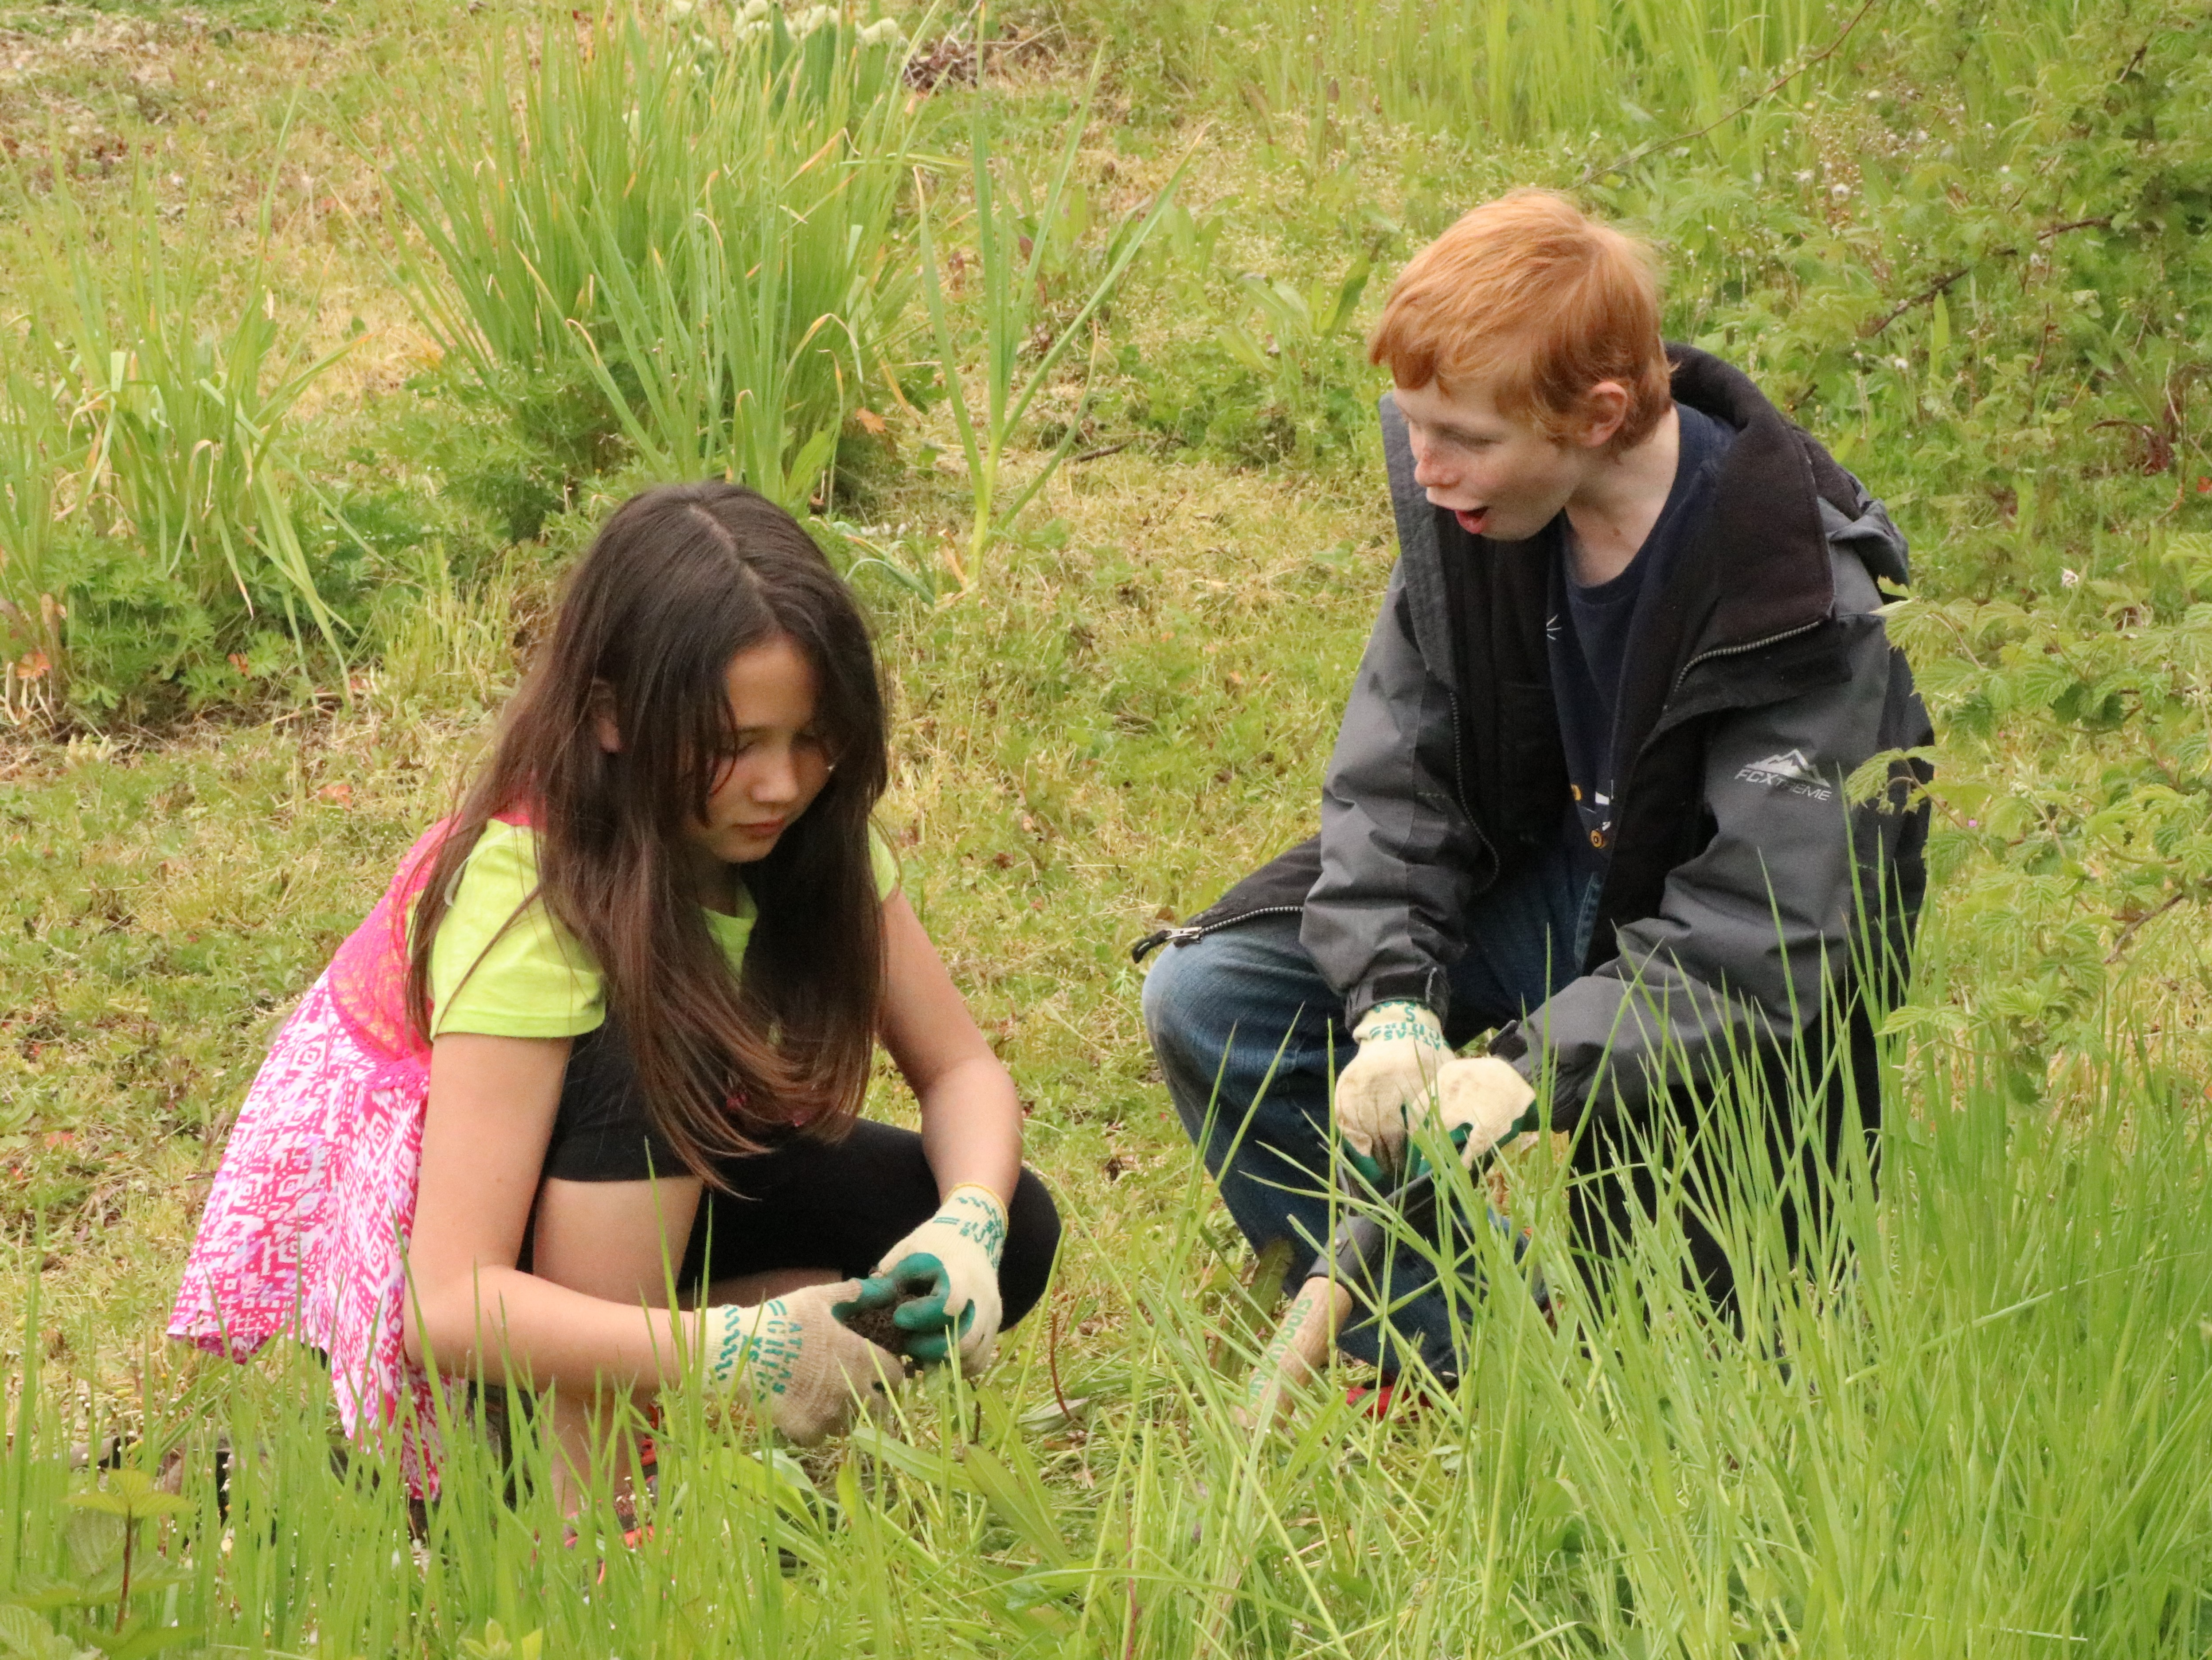 Fifth-graders Ava Soderholm and Nicky Brett work together in the Cascades School garden.